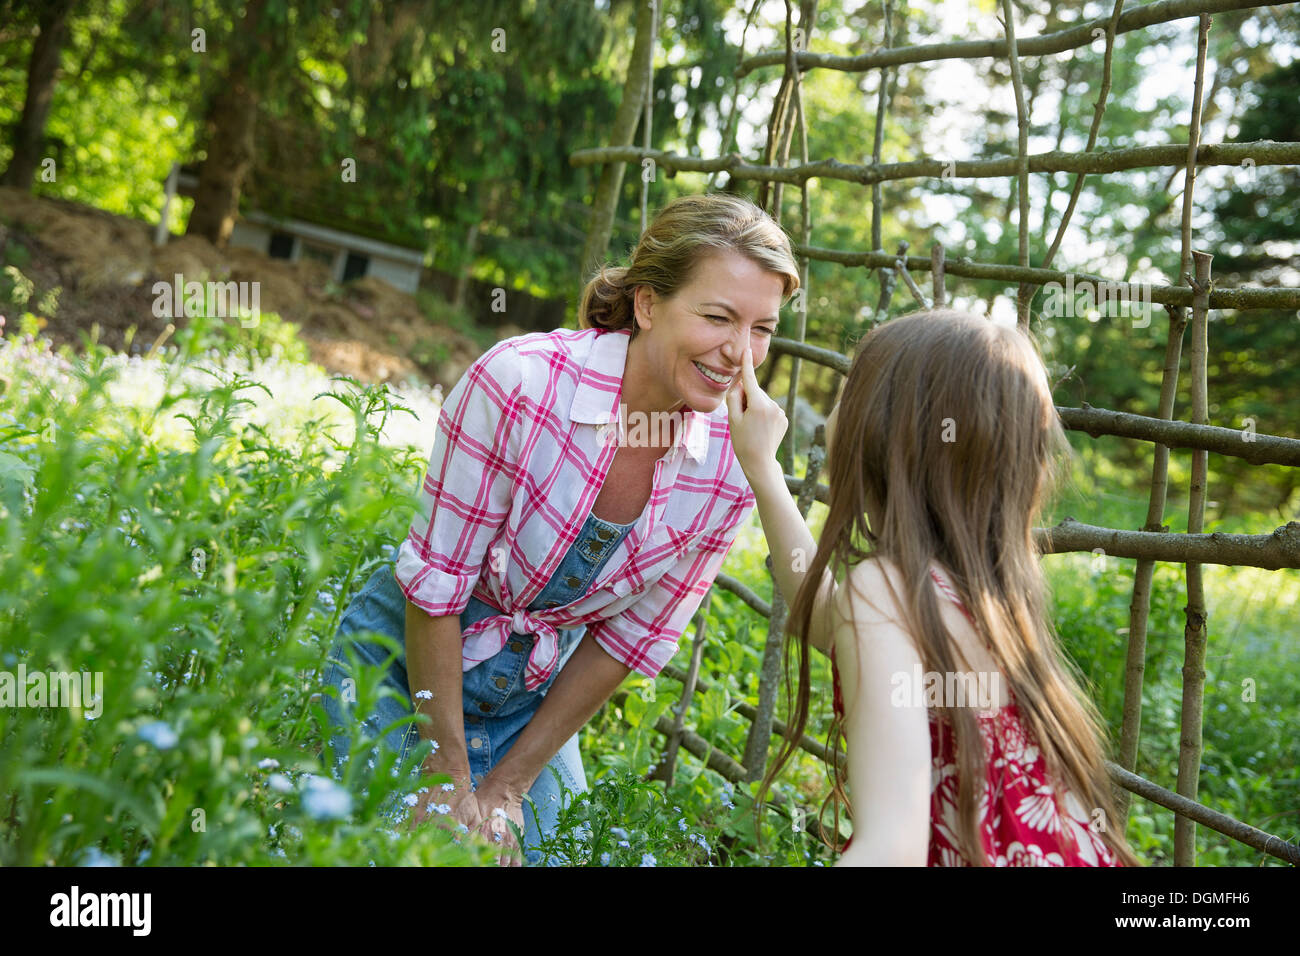 A mother and daughter together in a plant enclosure in a garden. Green leafy plants. A child touching the adult - Stock Image